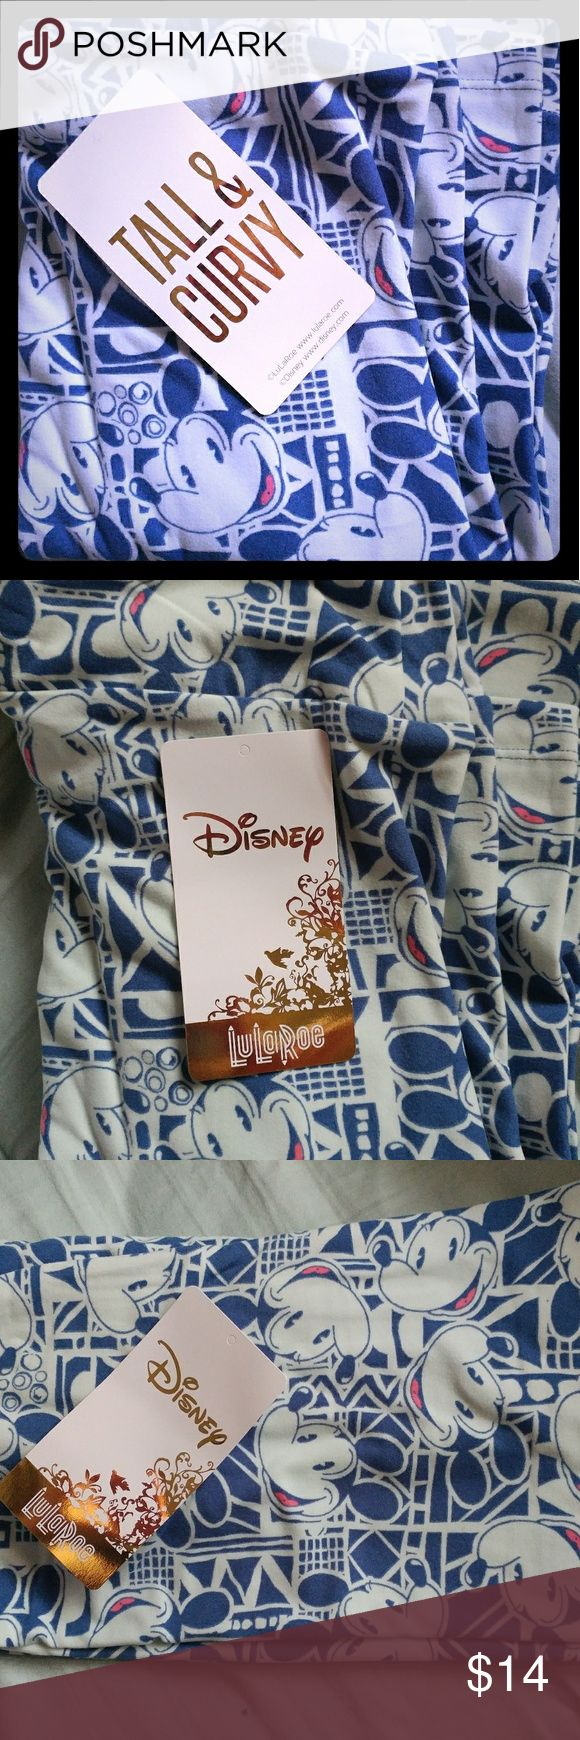 """Lularoe TC Disney Mickey Mouse leggings bnwt Blue """"old school Mickey"""" bnwt TC Lularoe leggings. Super cute and buttery soft - removed from plastic for the picture only. Listed as size 12 because they generally tend to fit a size 12-18/20 or so. Please let me know if you have any questions or need more pictures! Thank you! LuLaRoe Pants Leggings"""